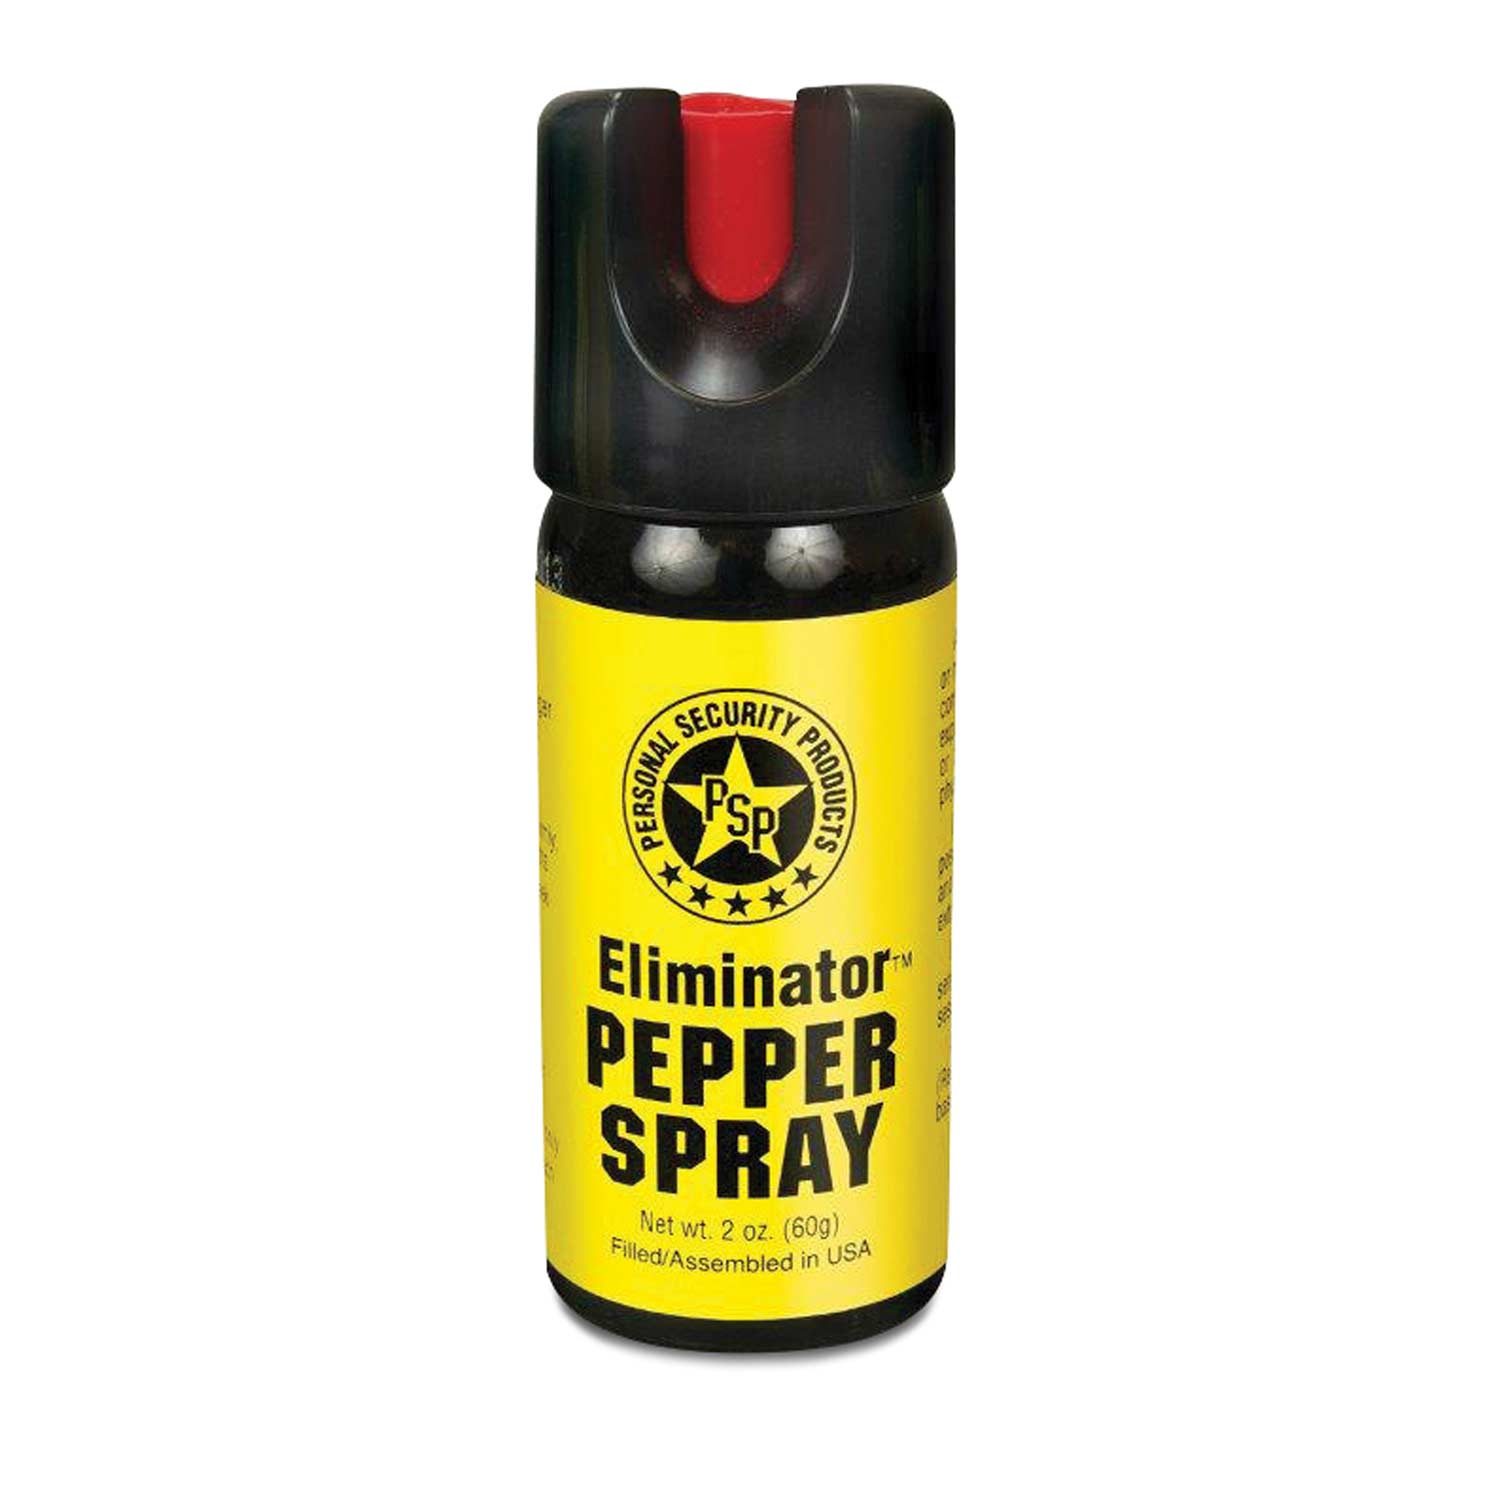 Personal Security Products 2 oz. Eliminator Pepper Spray